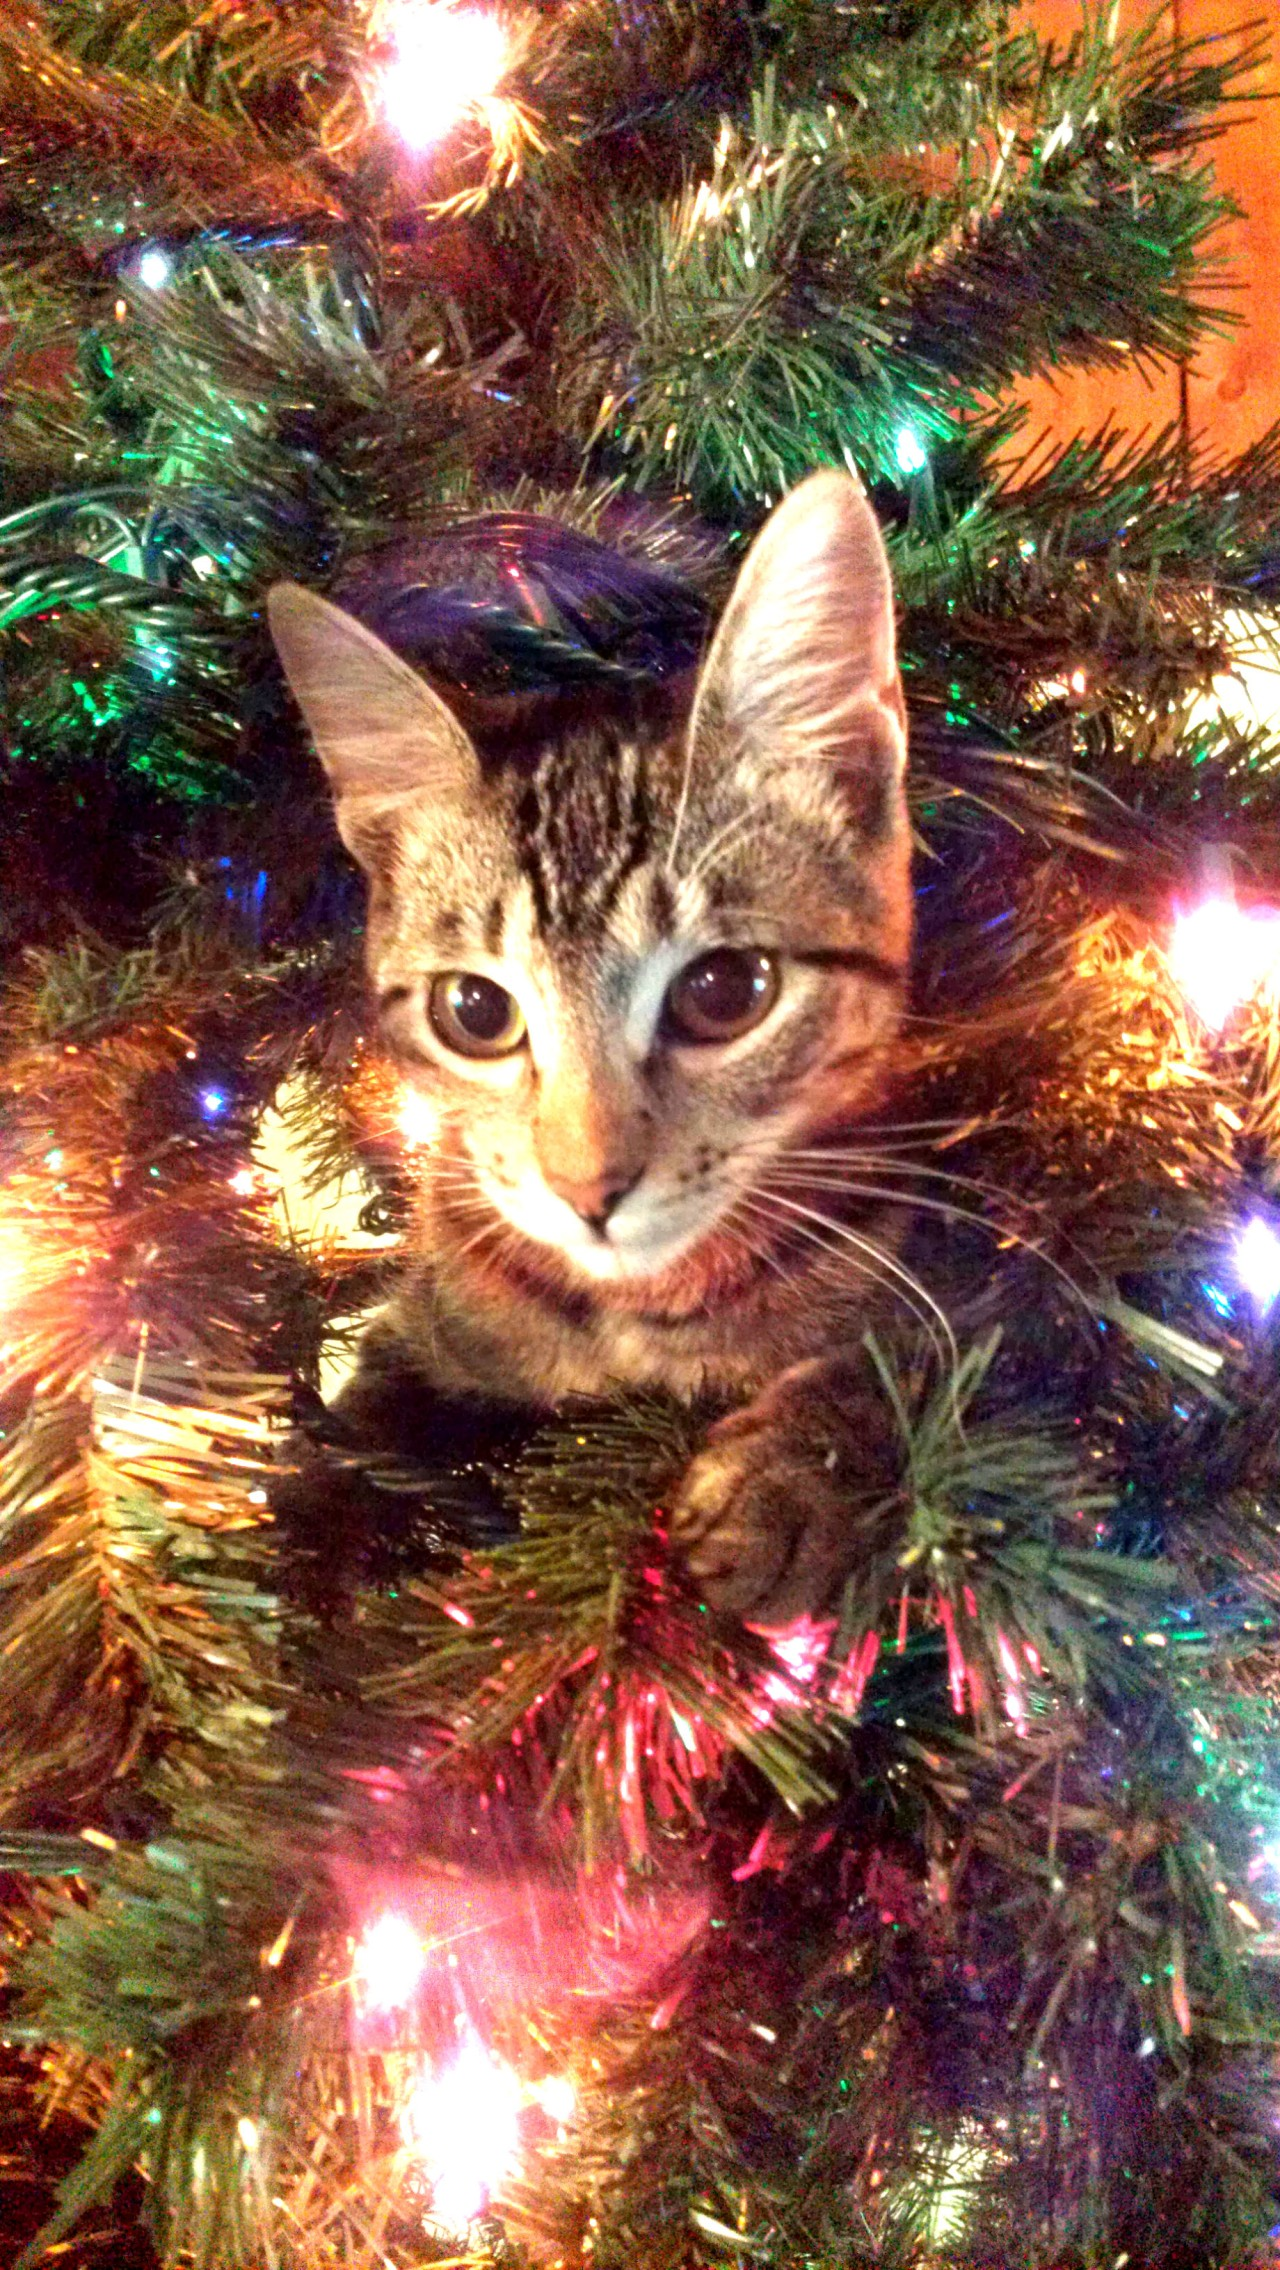 Boston (the cat) in a Christmas tree